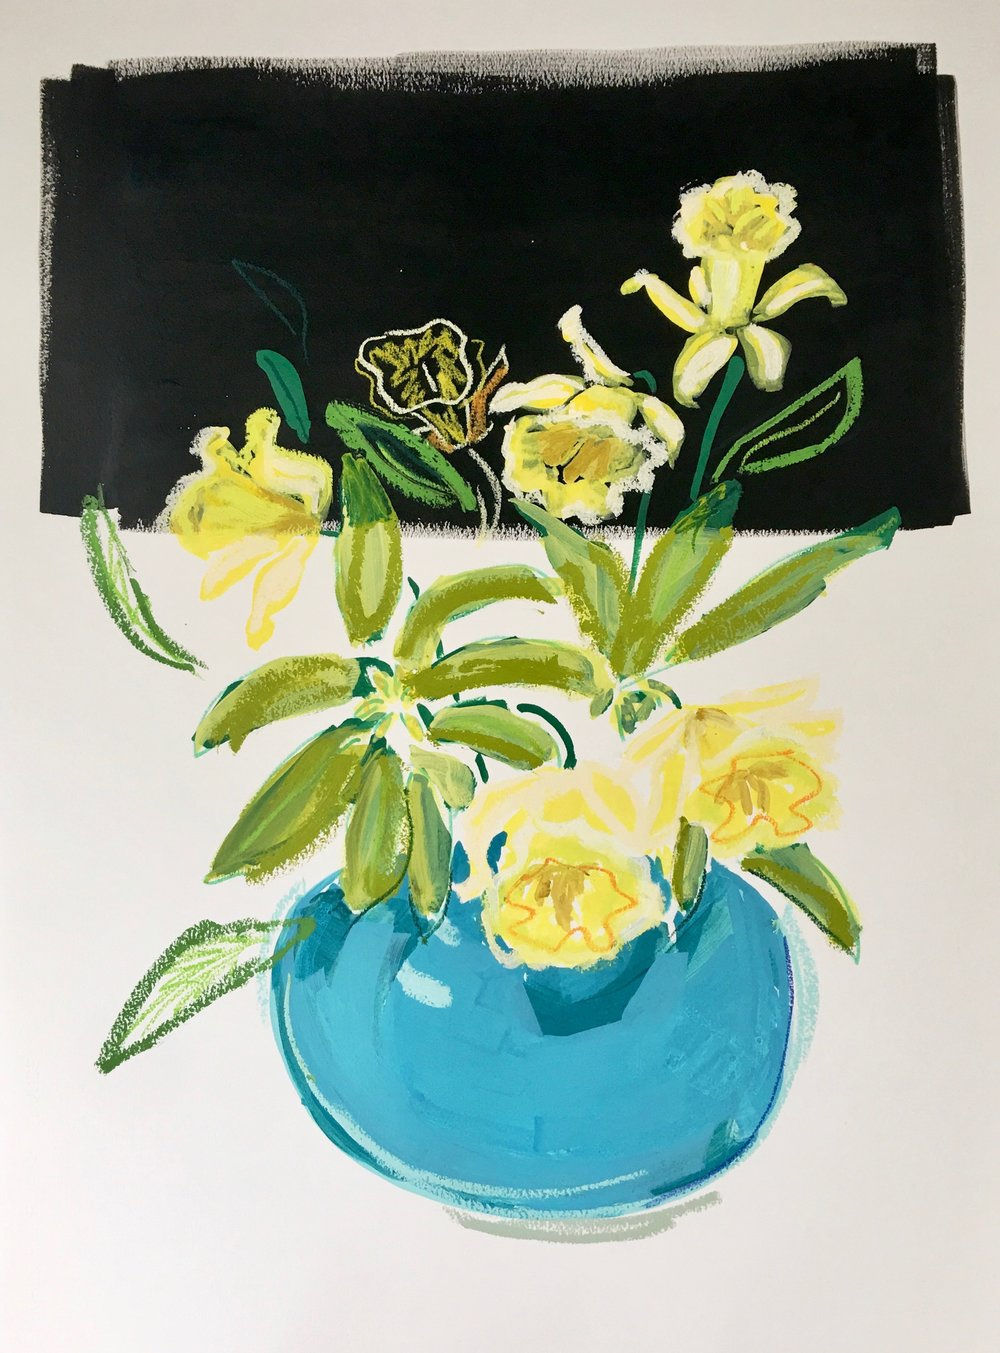 Daffodils in a Bowl I, 30x23